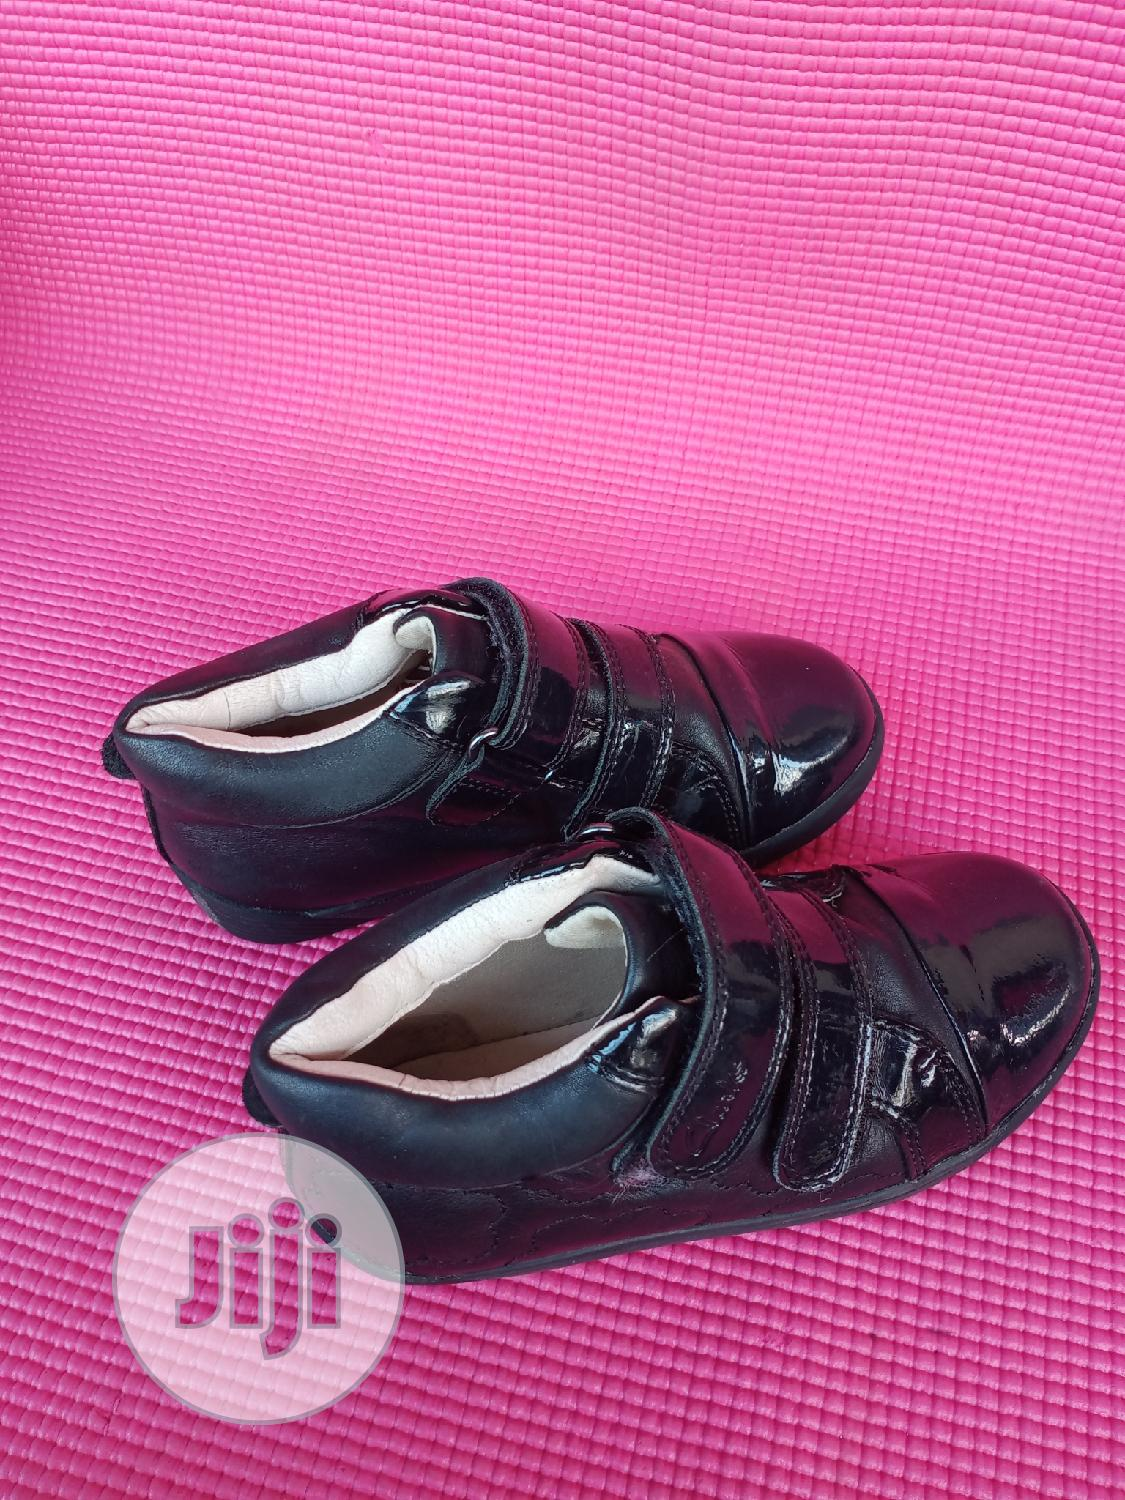 Archive: 1st Grade Fairly Used Shoes ,Very Affordable